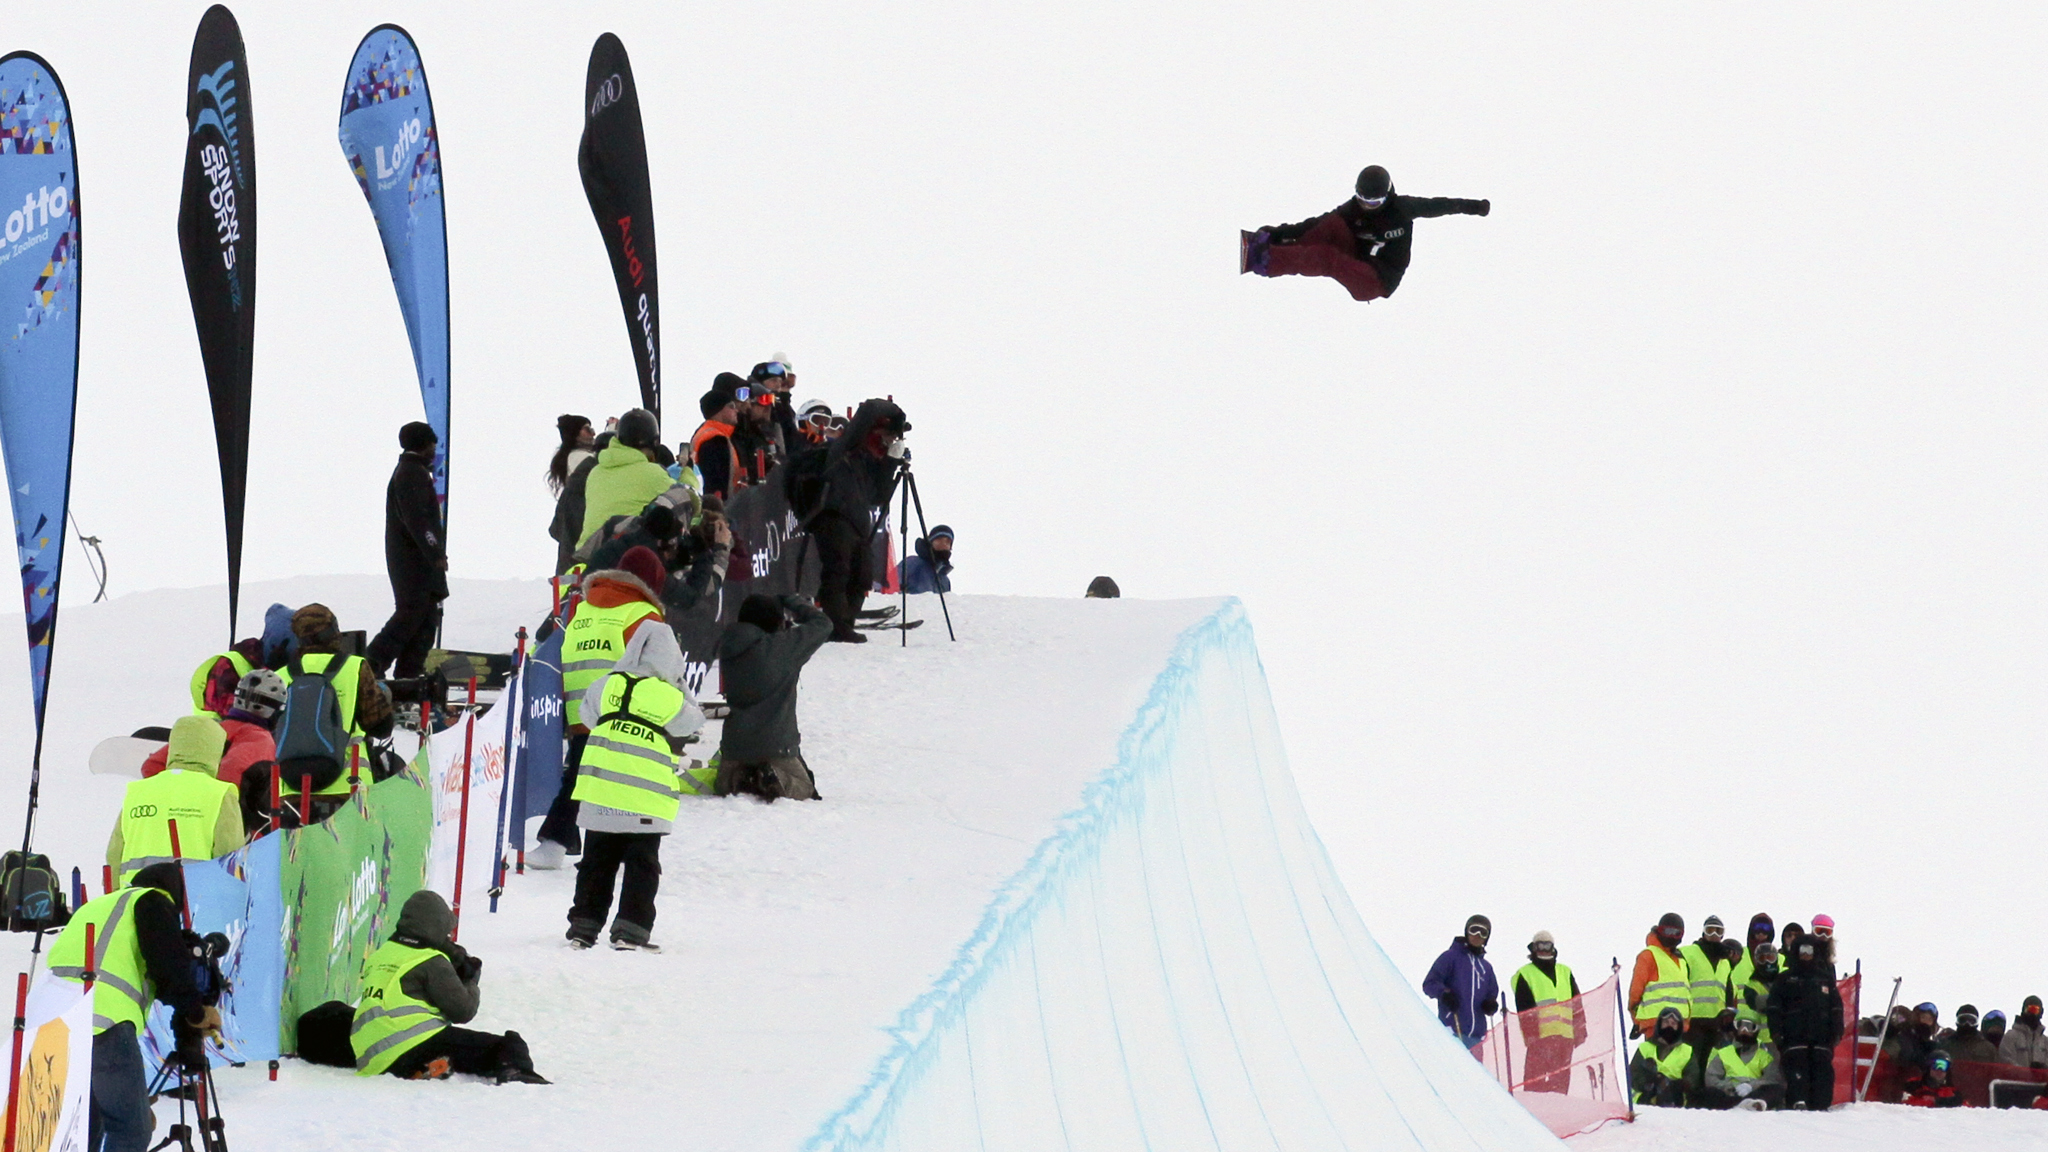 Kelly Clark claimed her 61st World Cup victory Saturday at the New Zealand Winter Games.